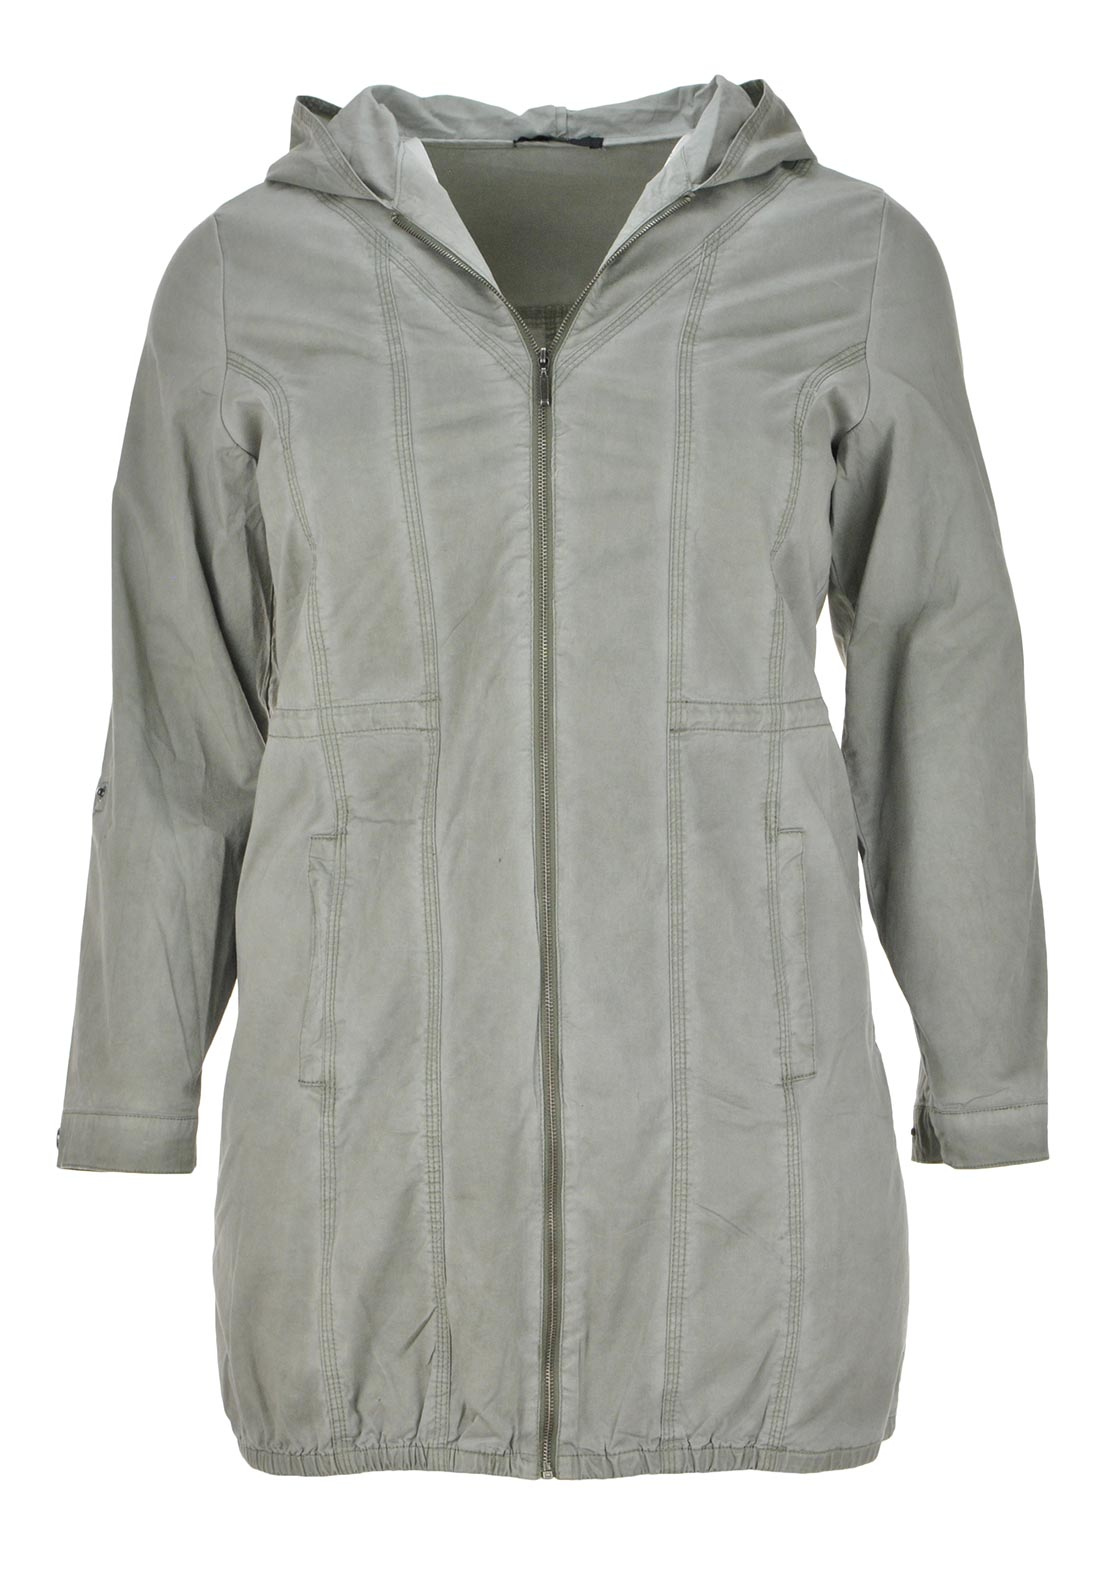 Ciso Hooded Cotton Parka Jacket, Khaki Green